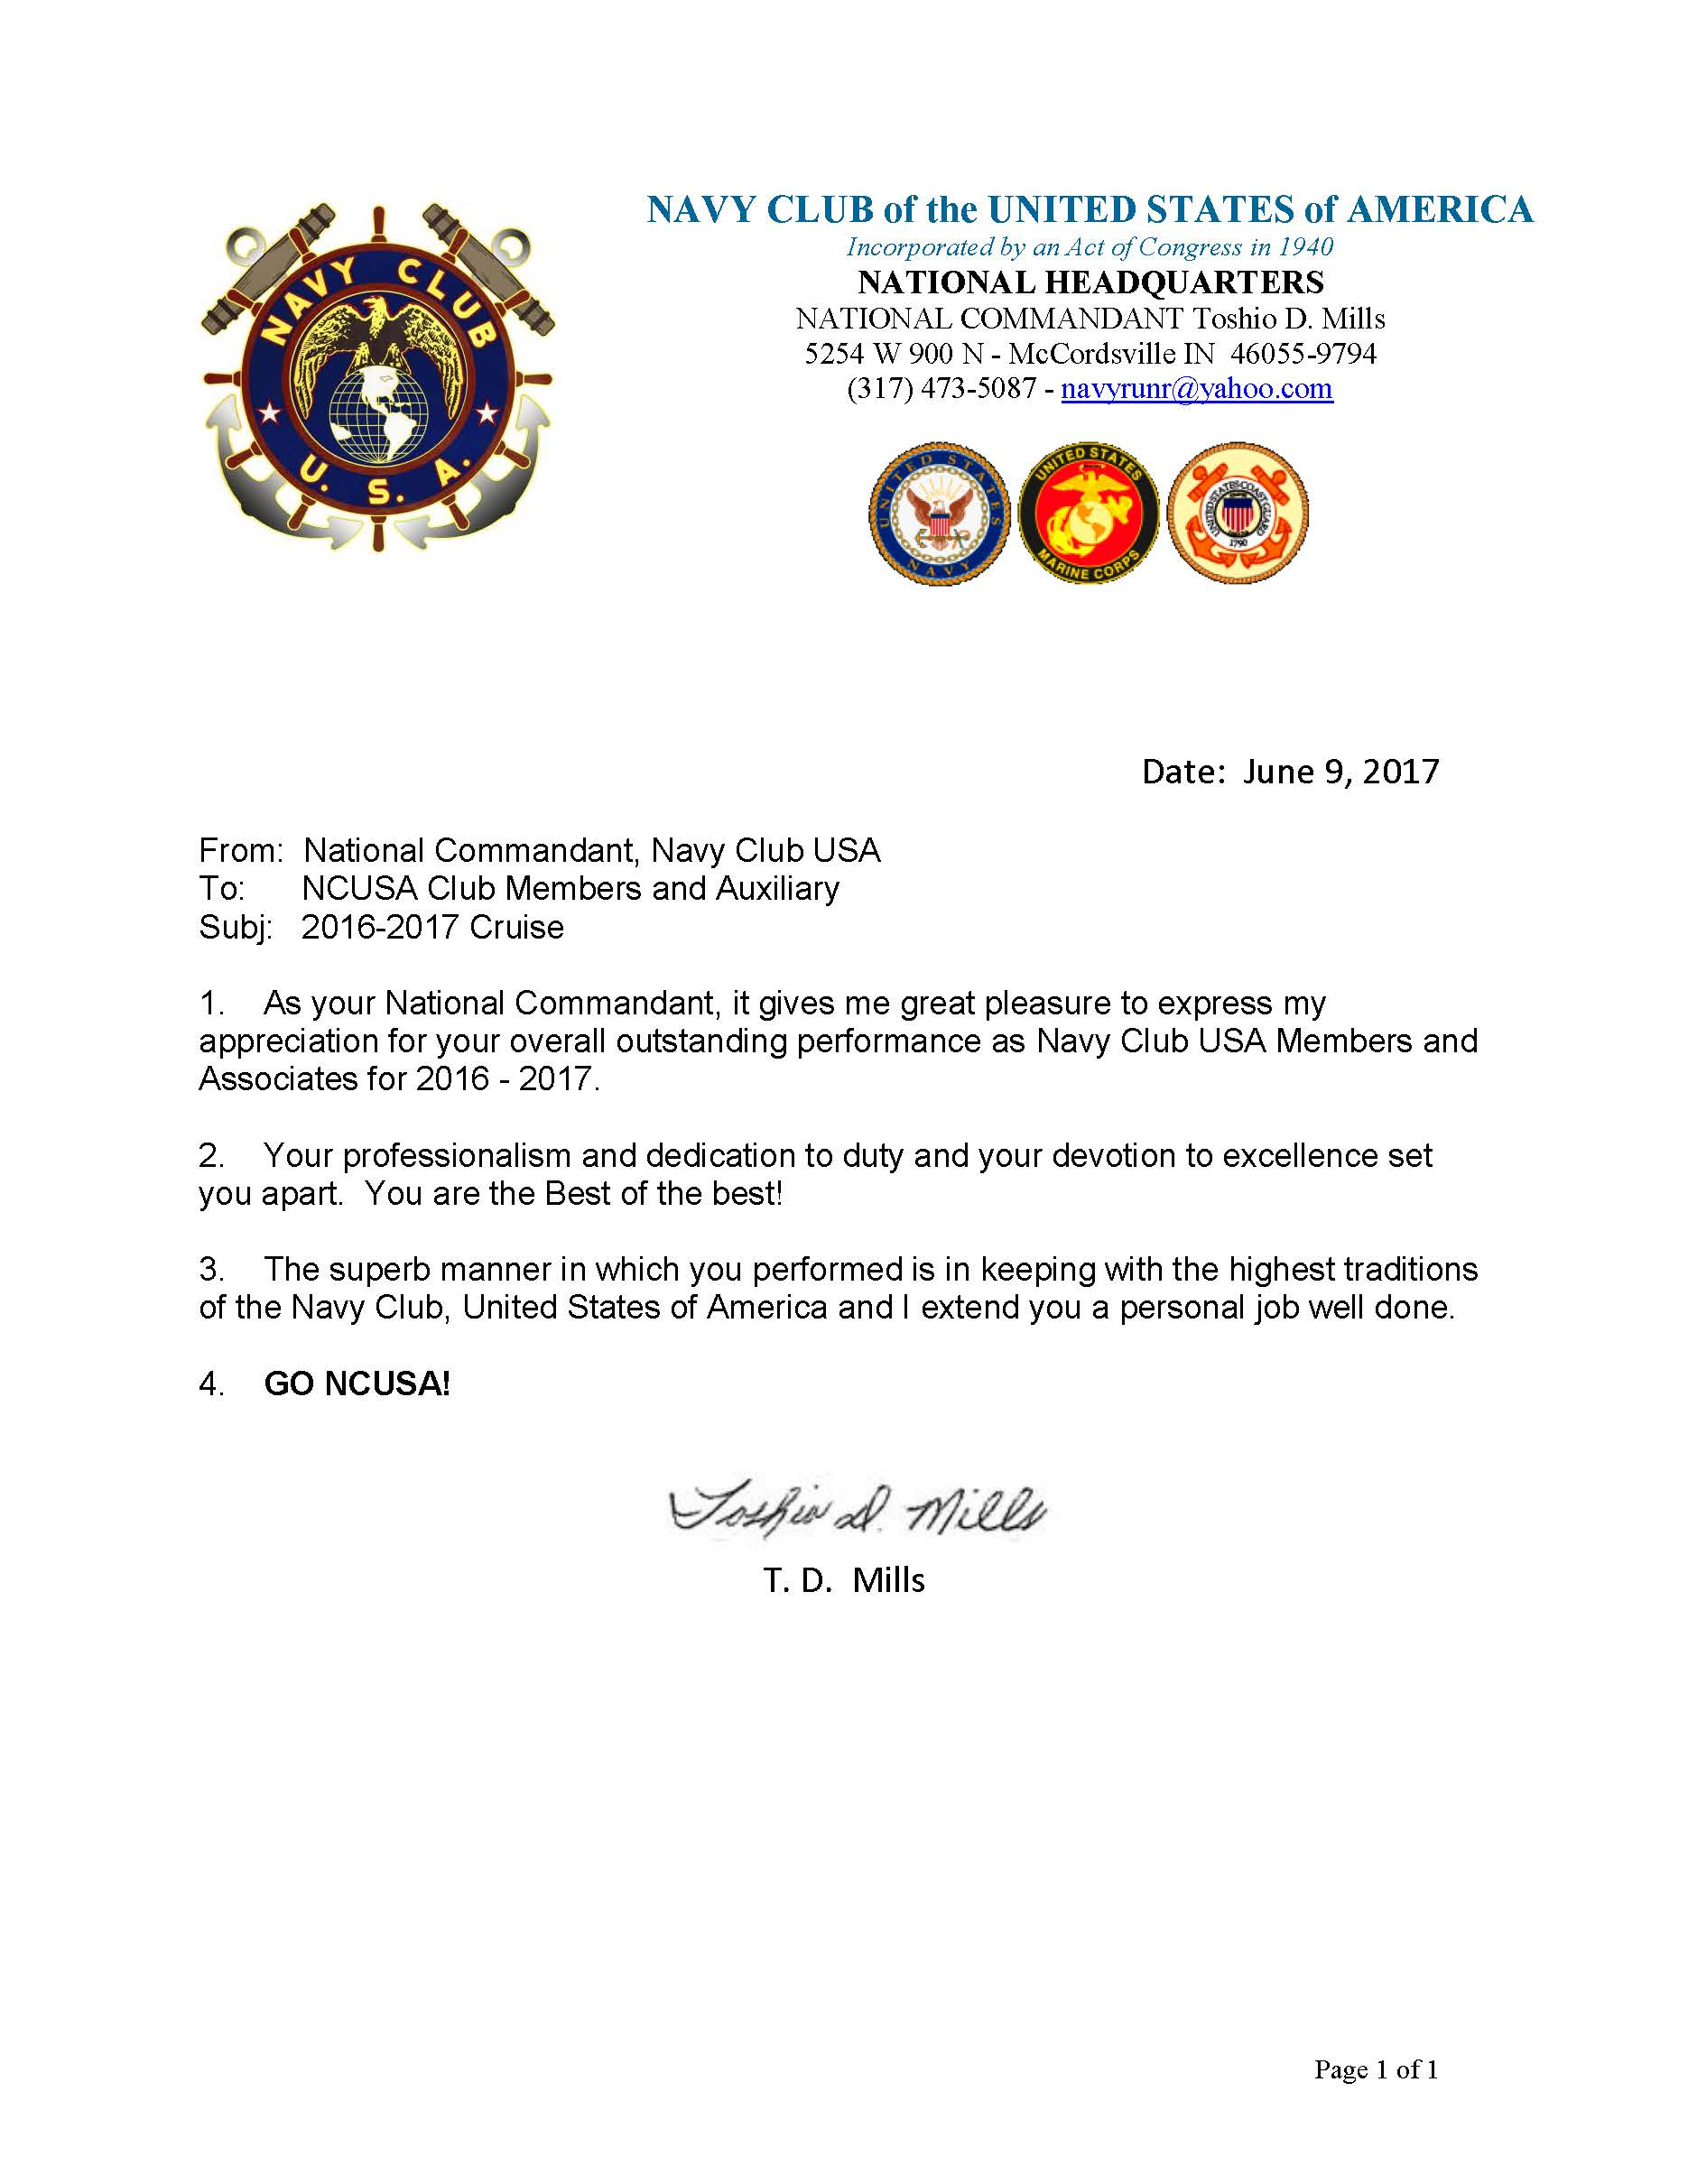 NCUSA NATIONAL COMMANDANTS LETTER OF APPRECIATION